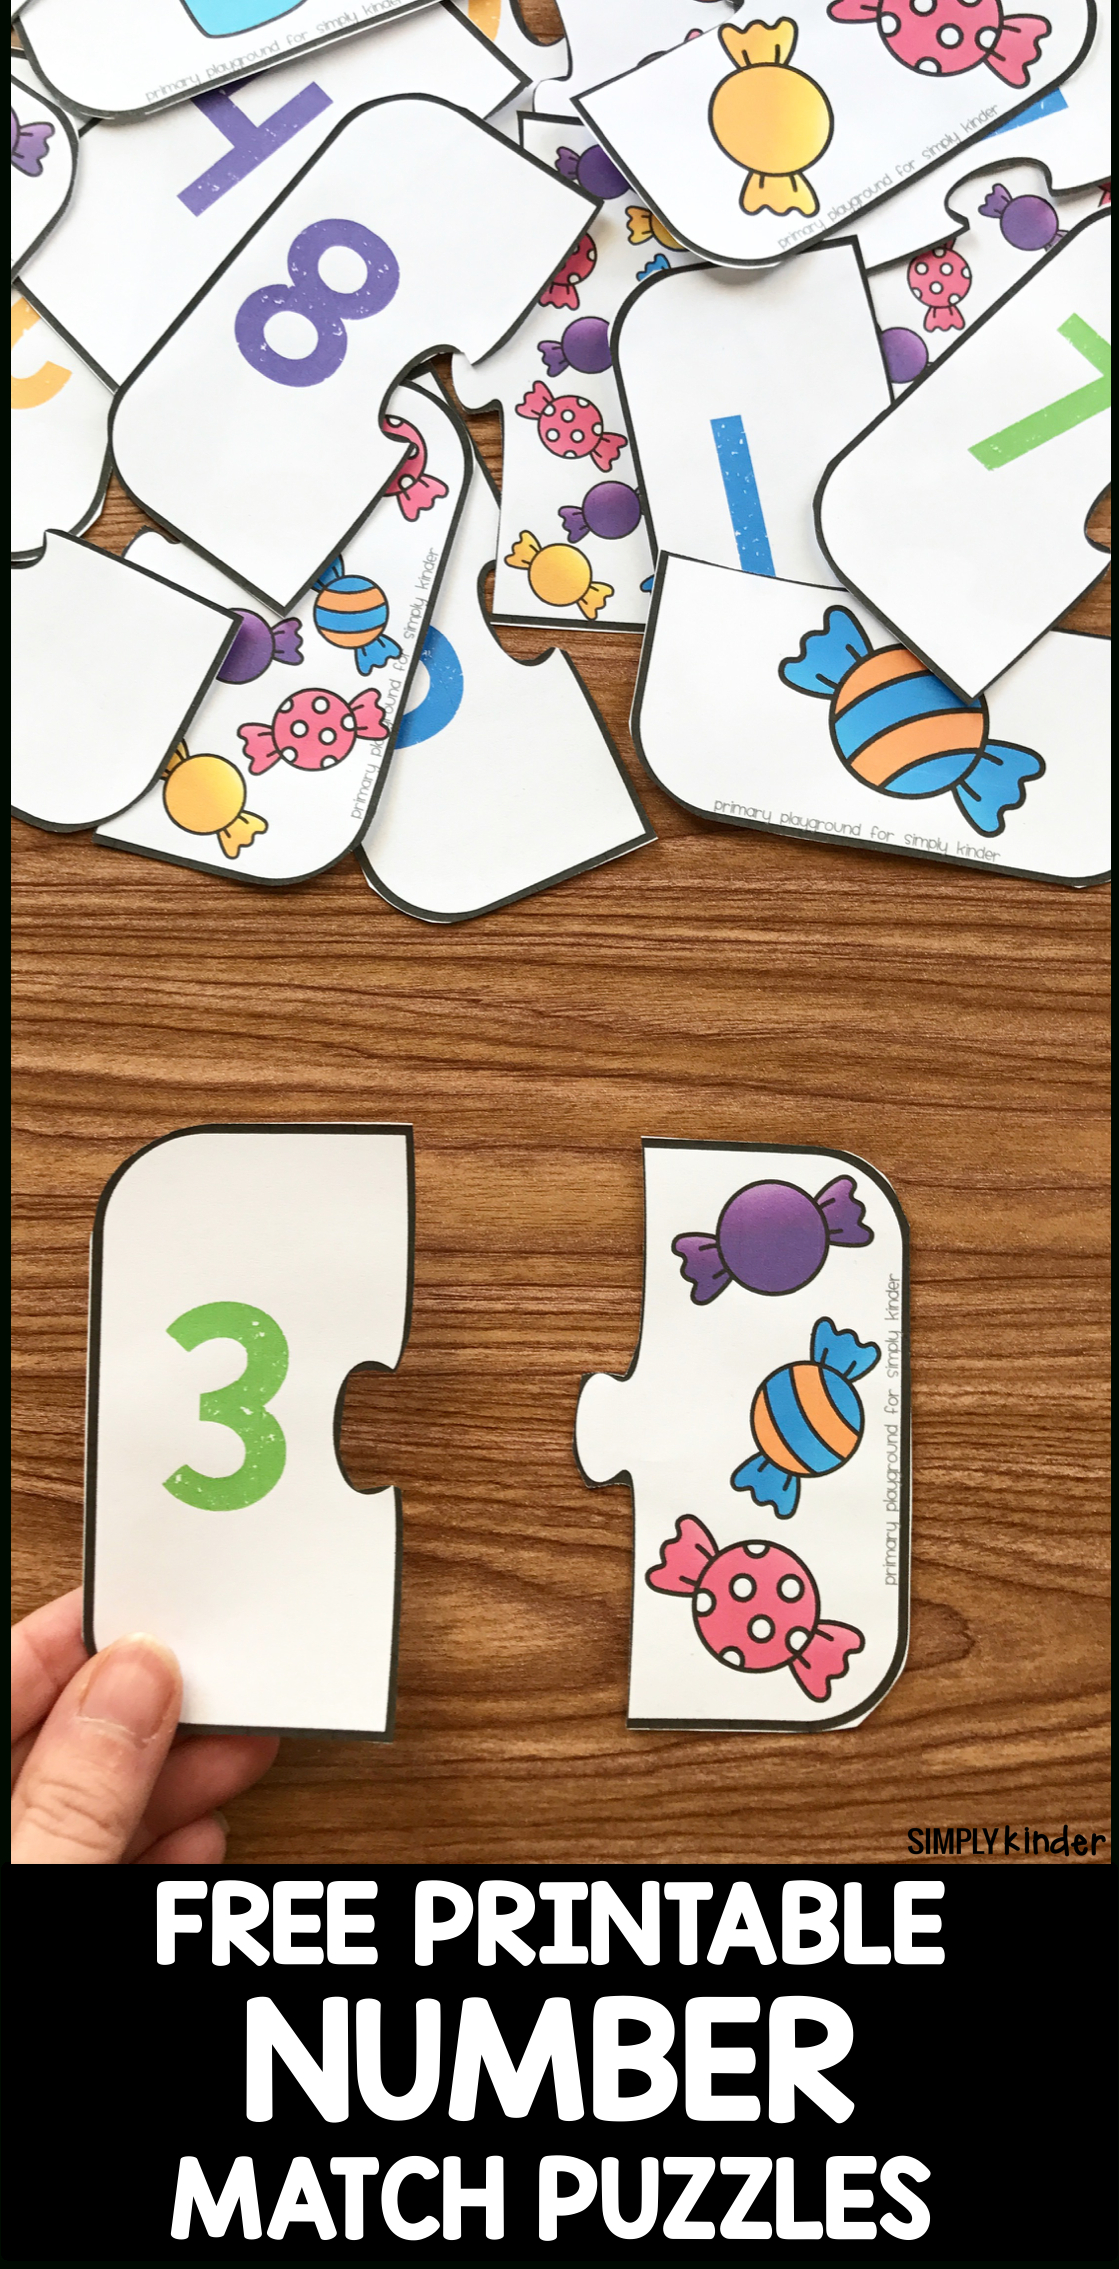 Free Printable Number Match Puzzles | Numbers | Simply Kinder, Free - Printable Number Puzzles For Preschoolers